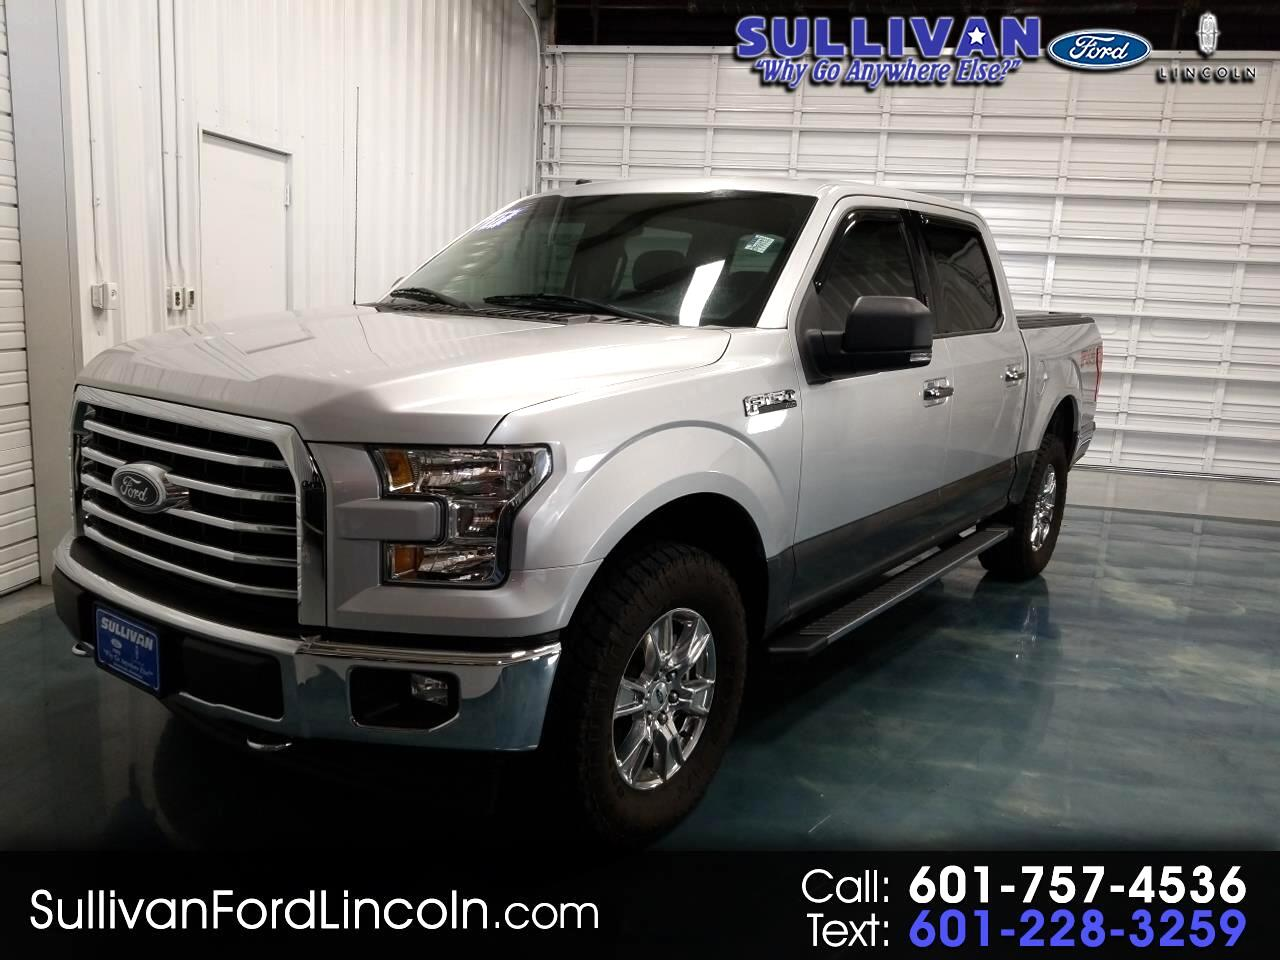 2017 Ford F-150 4WD SuperCrew 139